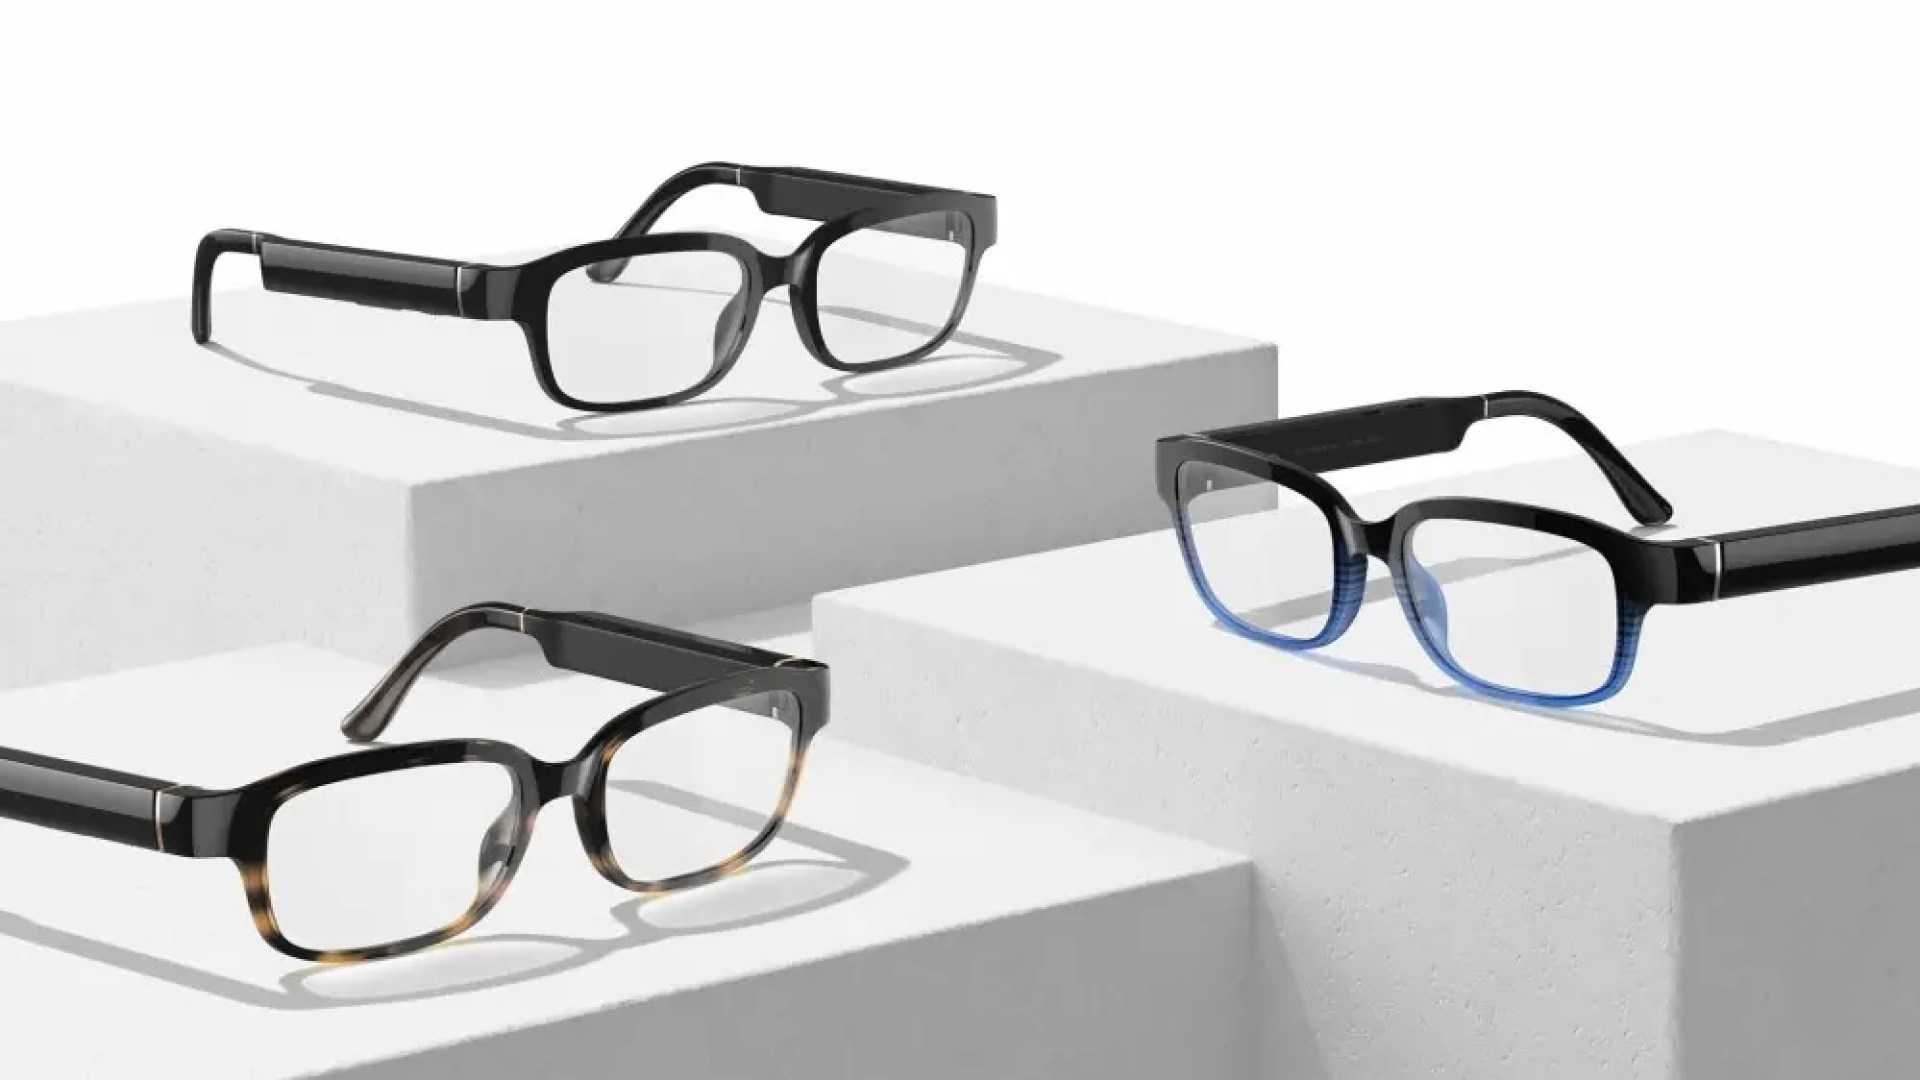 A photo of the Echo Frames smart glasses in three colors.